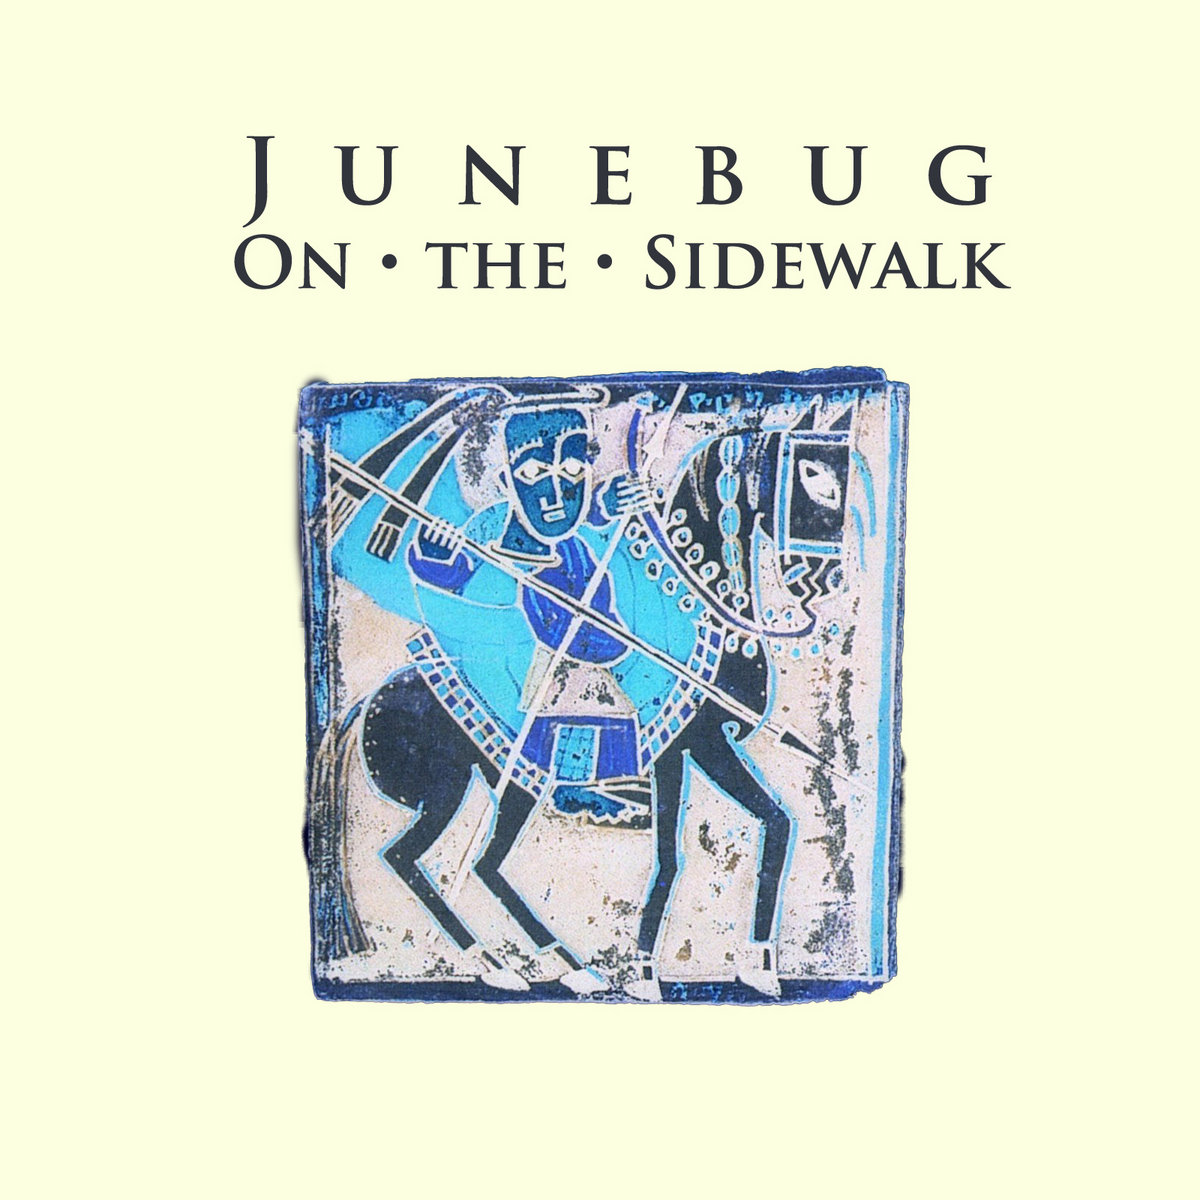 On the Sidewalk (single) by Junebug